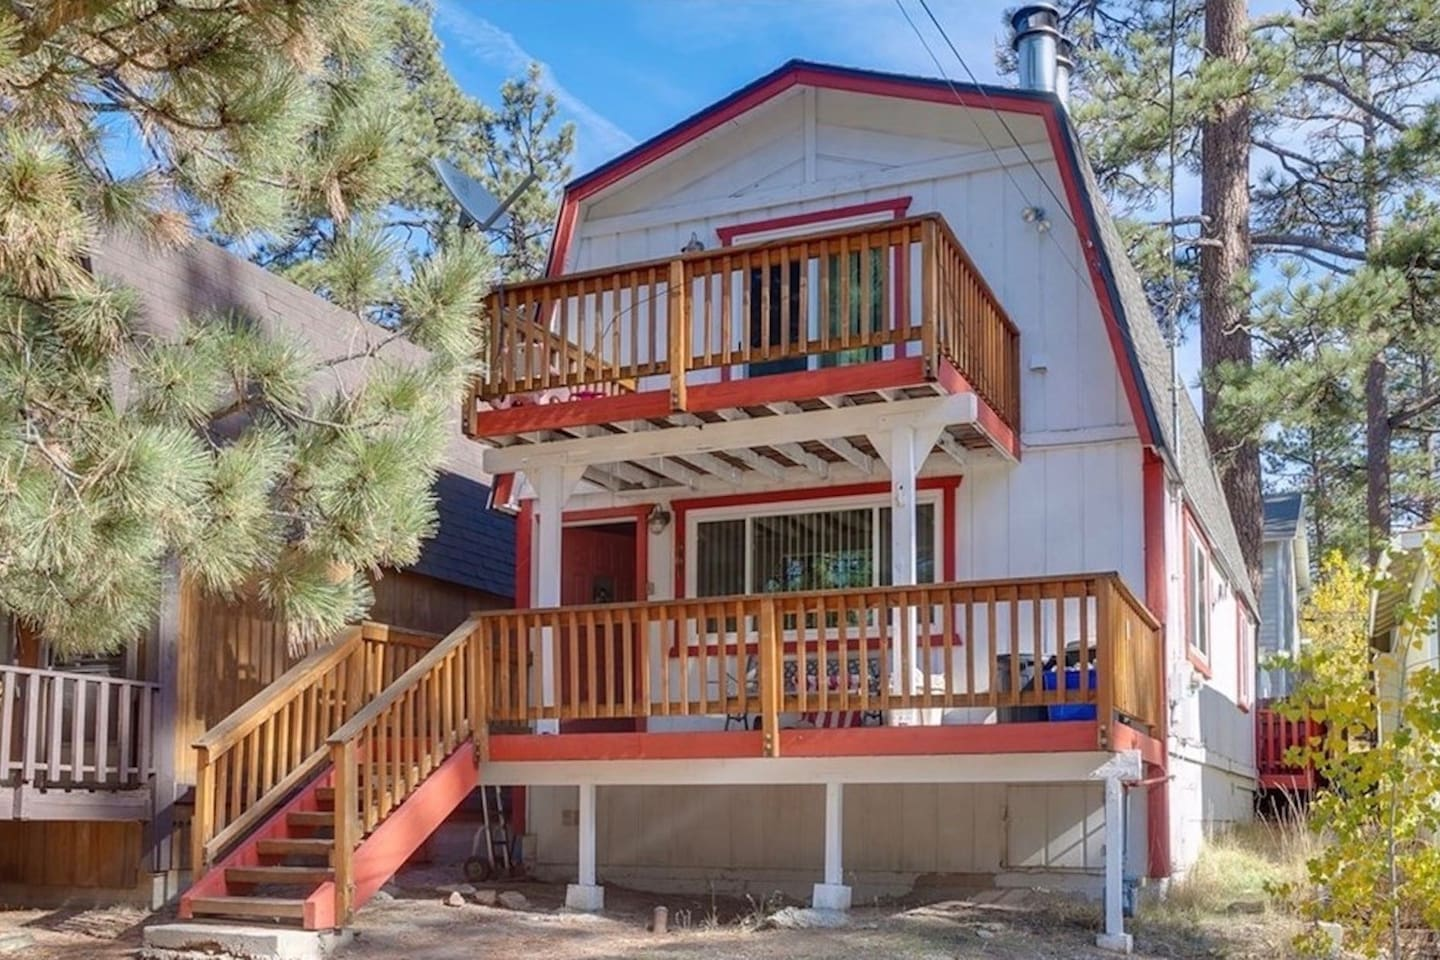 View from the street. Two decks in the front with awesome views of the woods!